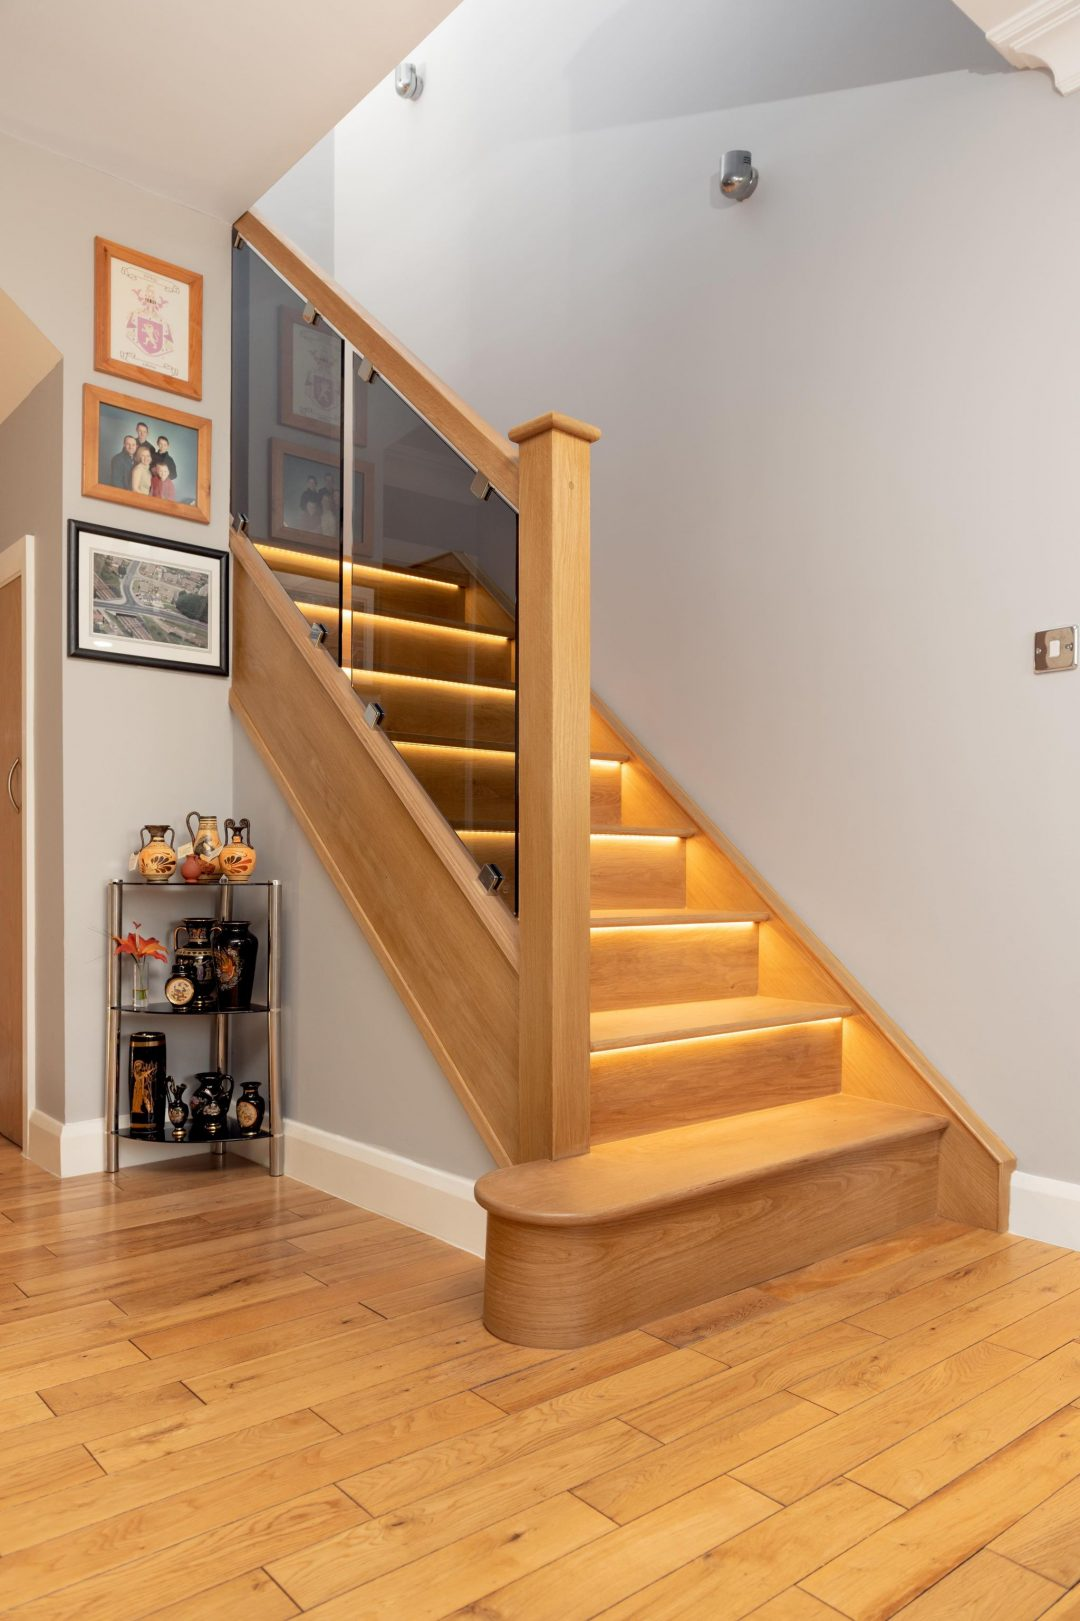 Staircase Renovations in Leyland